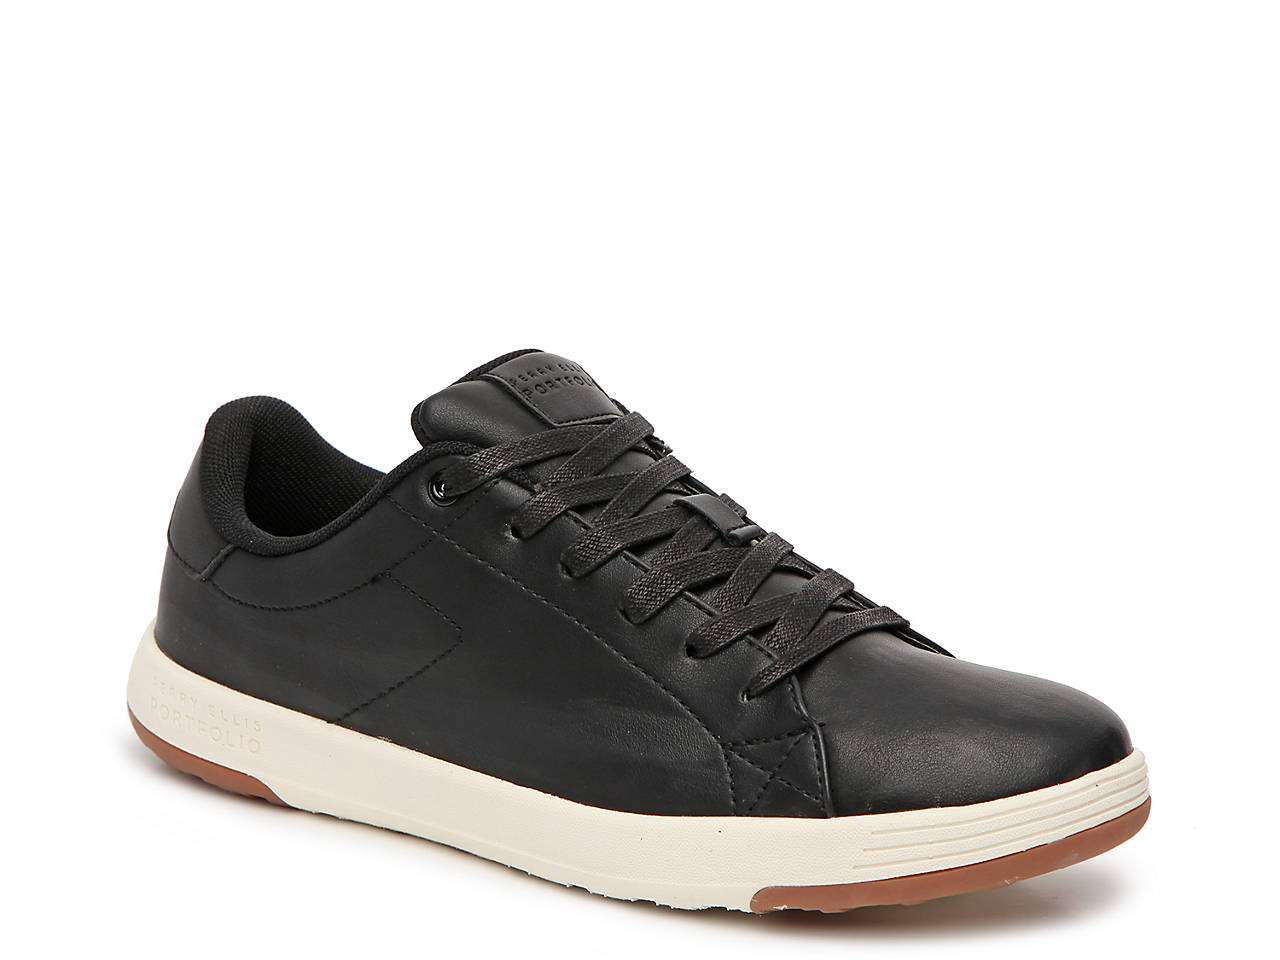 6648d0c87a8 Perry Ellis Portfolio Toney Sneaker Men s Shoes